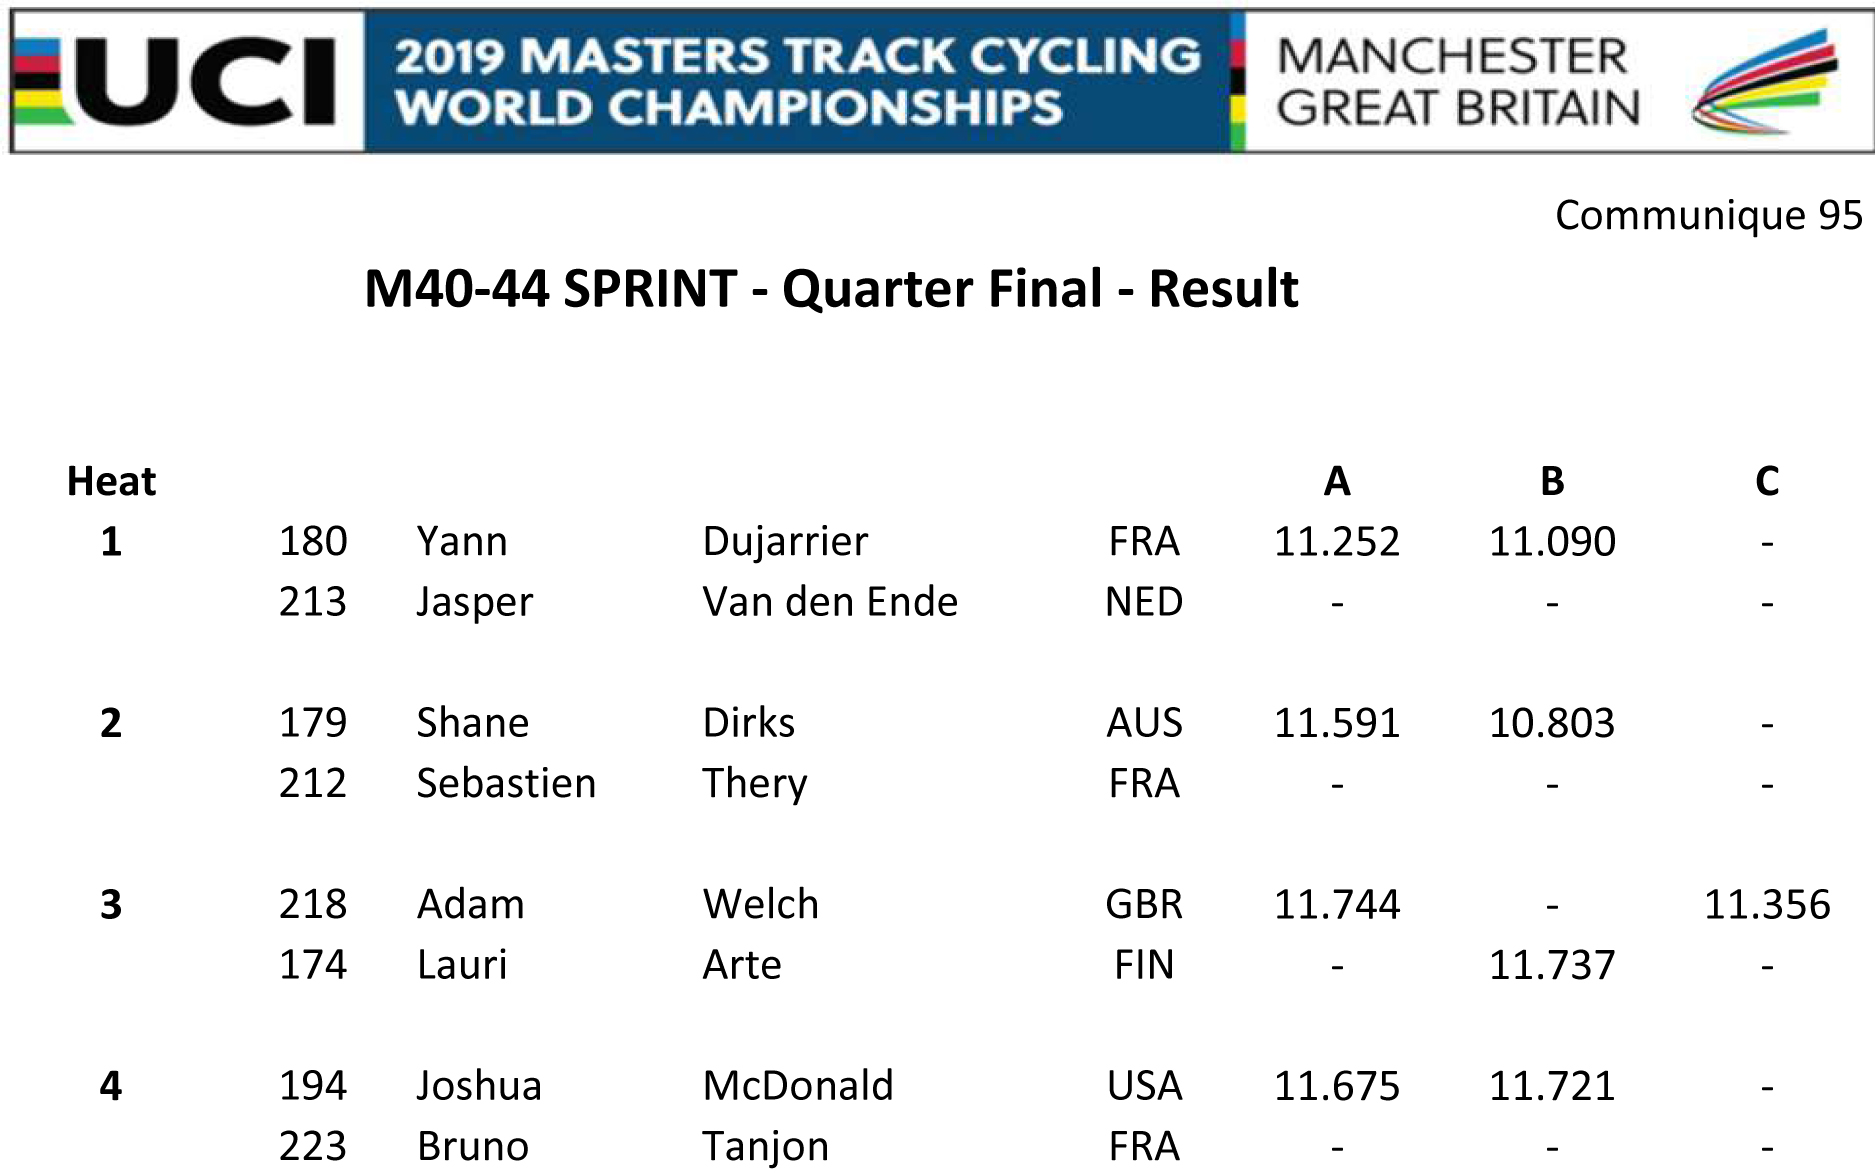 M4044 SPRINT QF RESULT